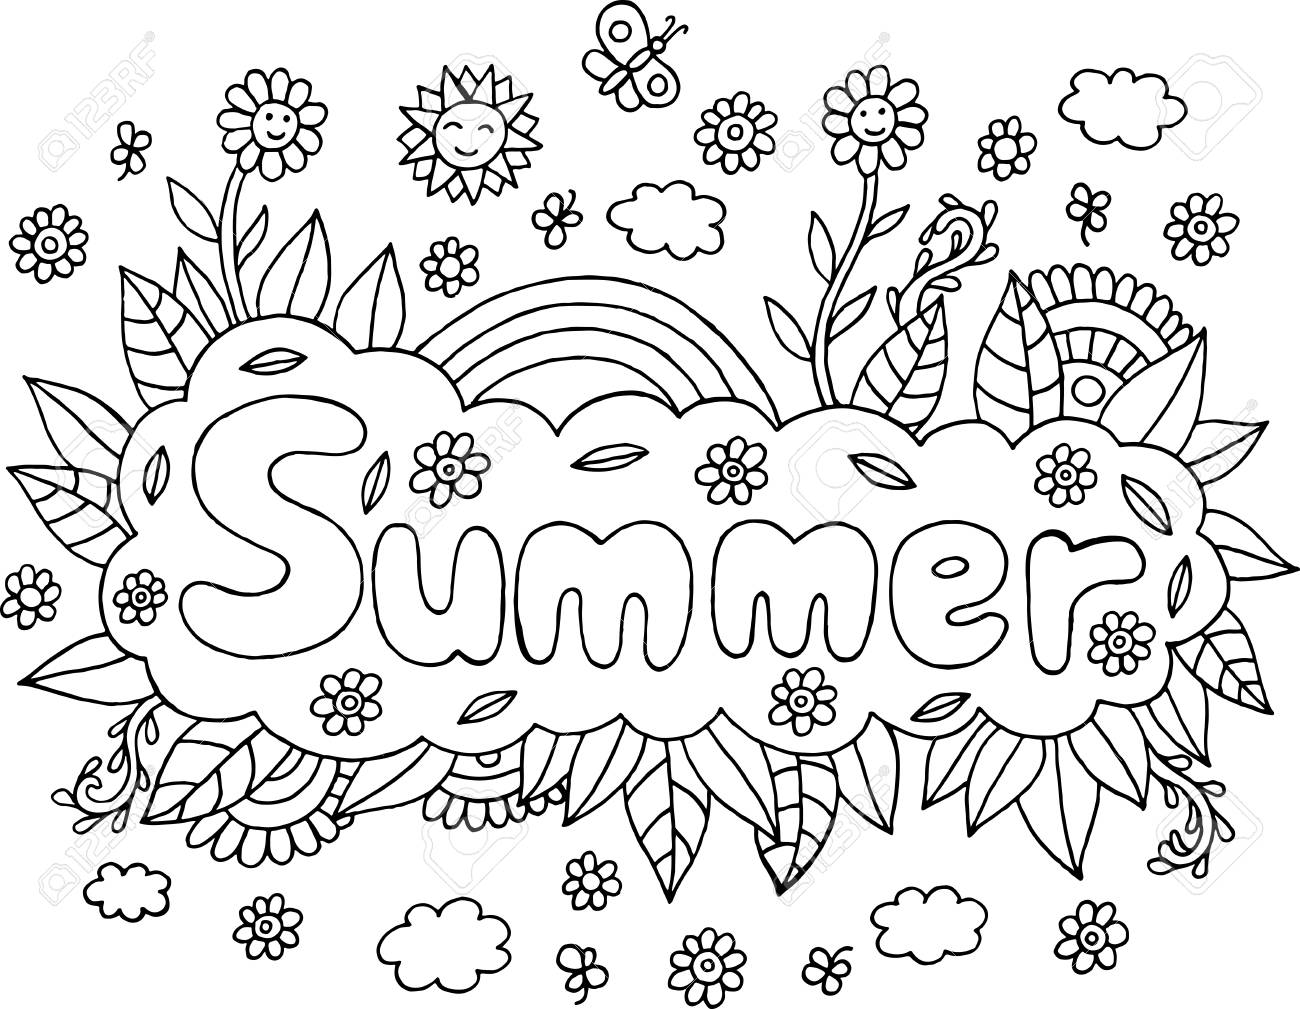 Coloring page for adults with mandala and Summer word. Doodle..